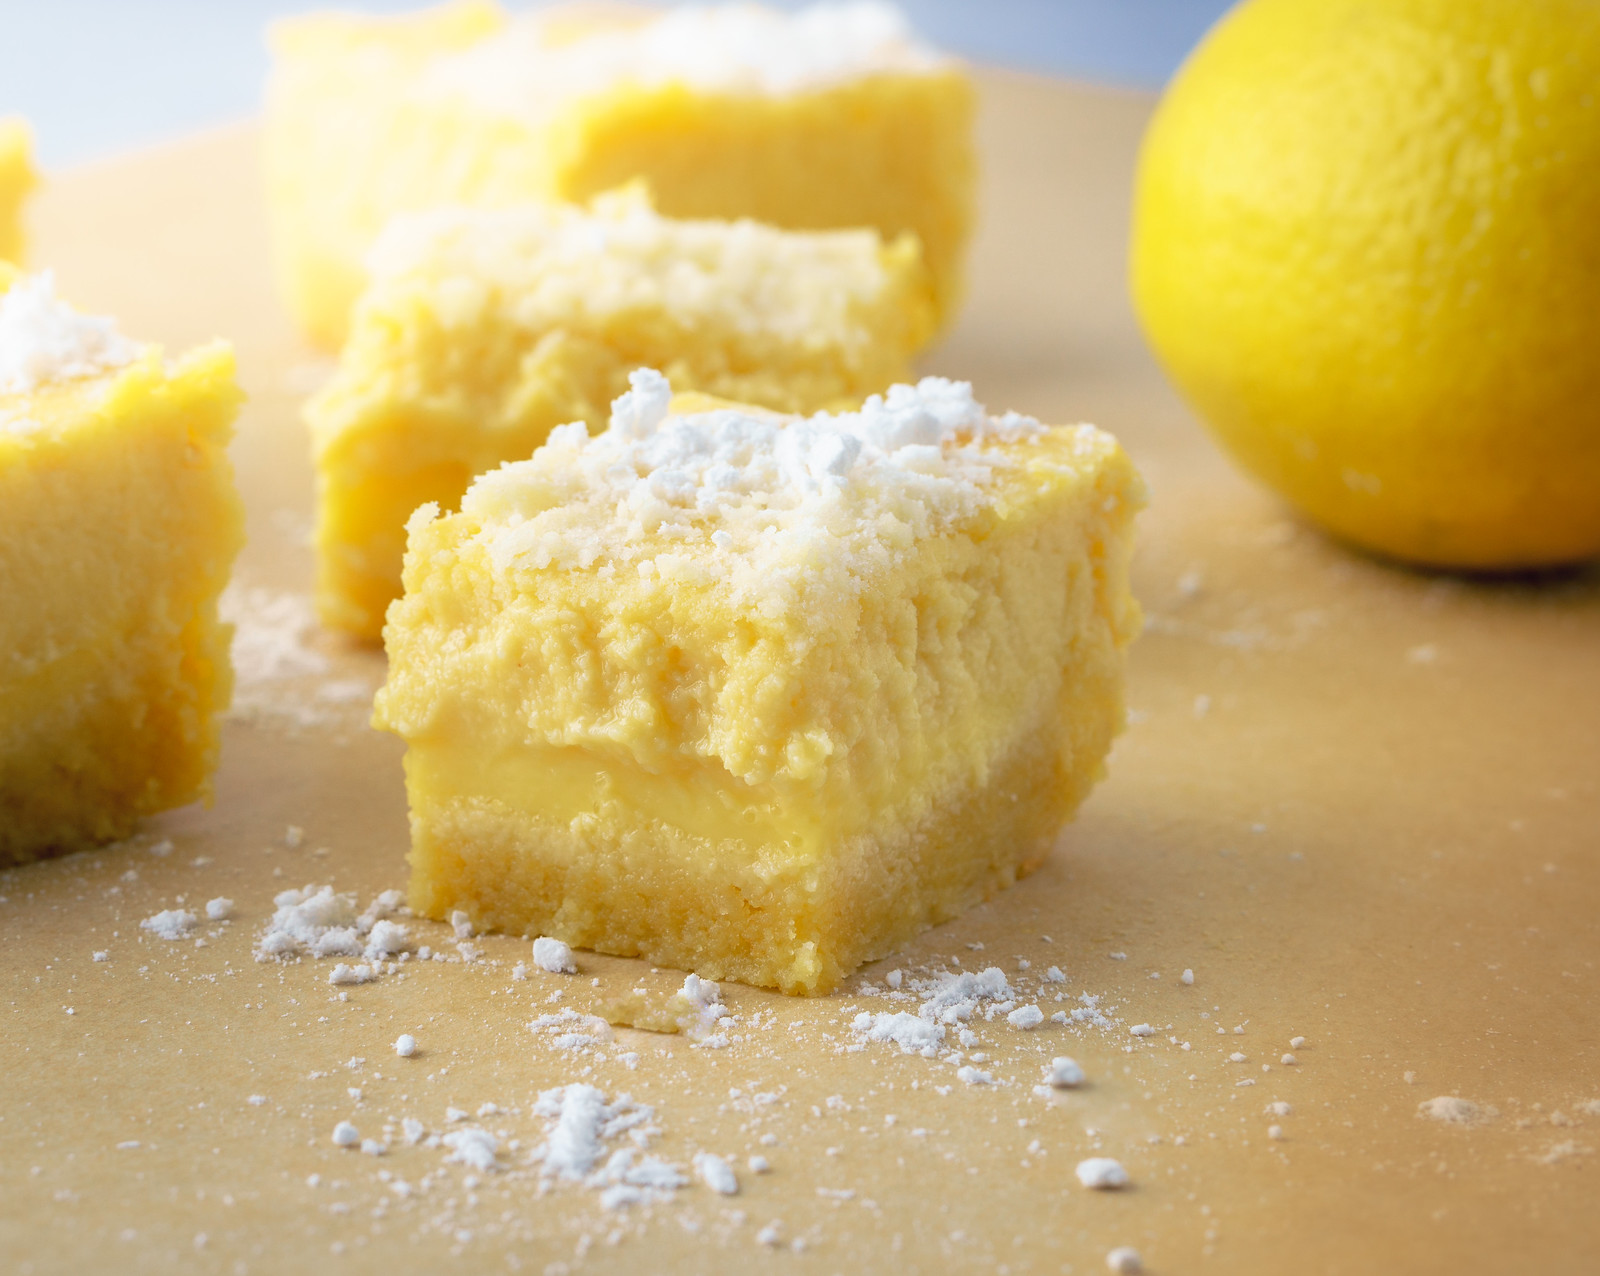 Recipe: Low-Carbohydrate, Healthy Fat Lemon Bars